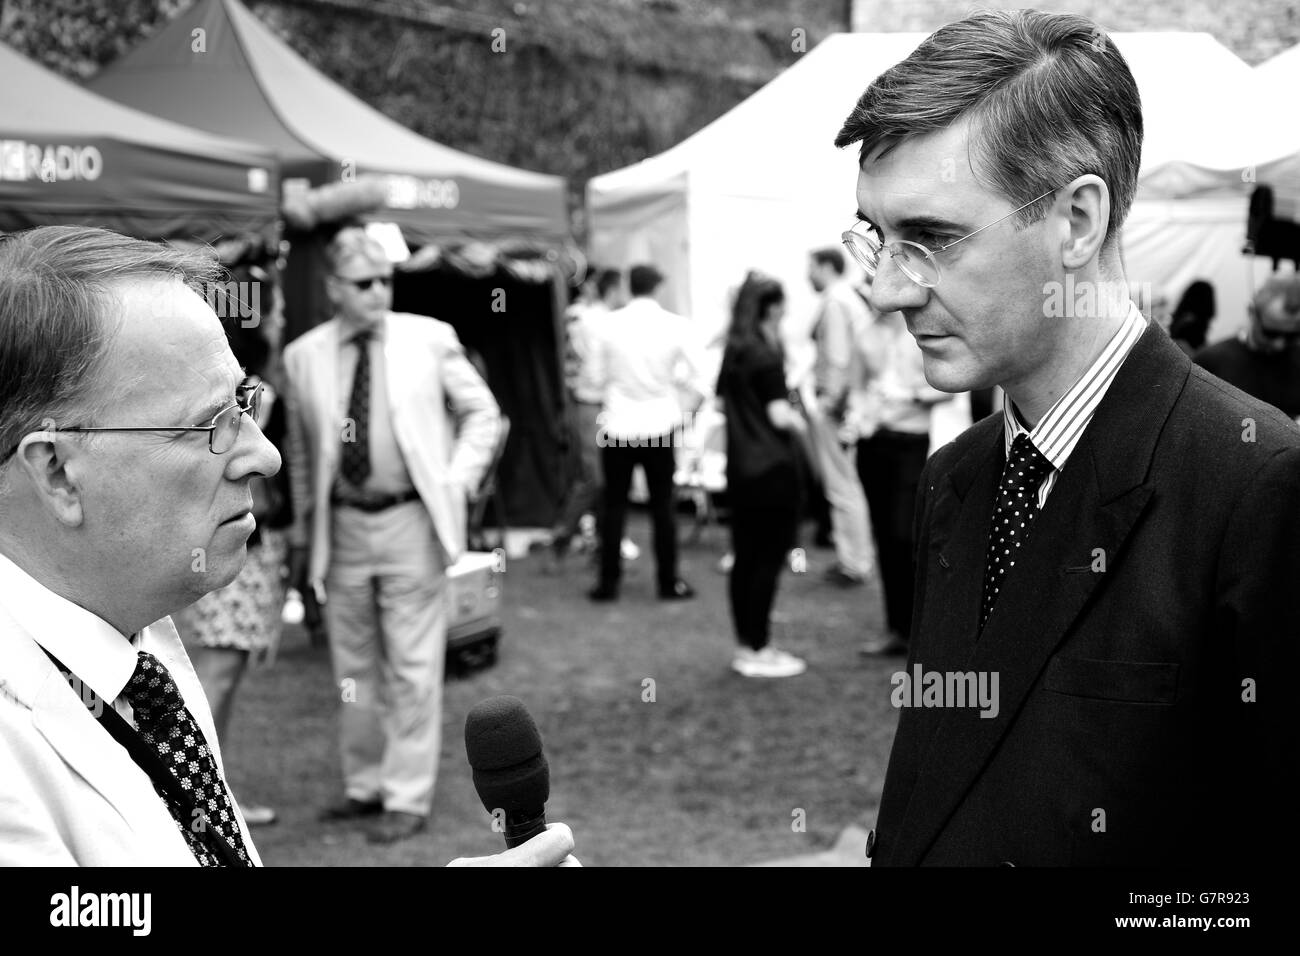 Channel 4 broadcaster and journalist Michael Crick interviews Tory MP Jacob Rees-Mogg about the result of the EU - Stock Image